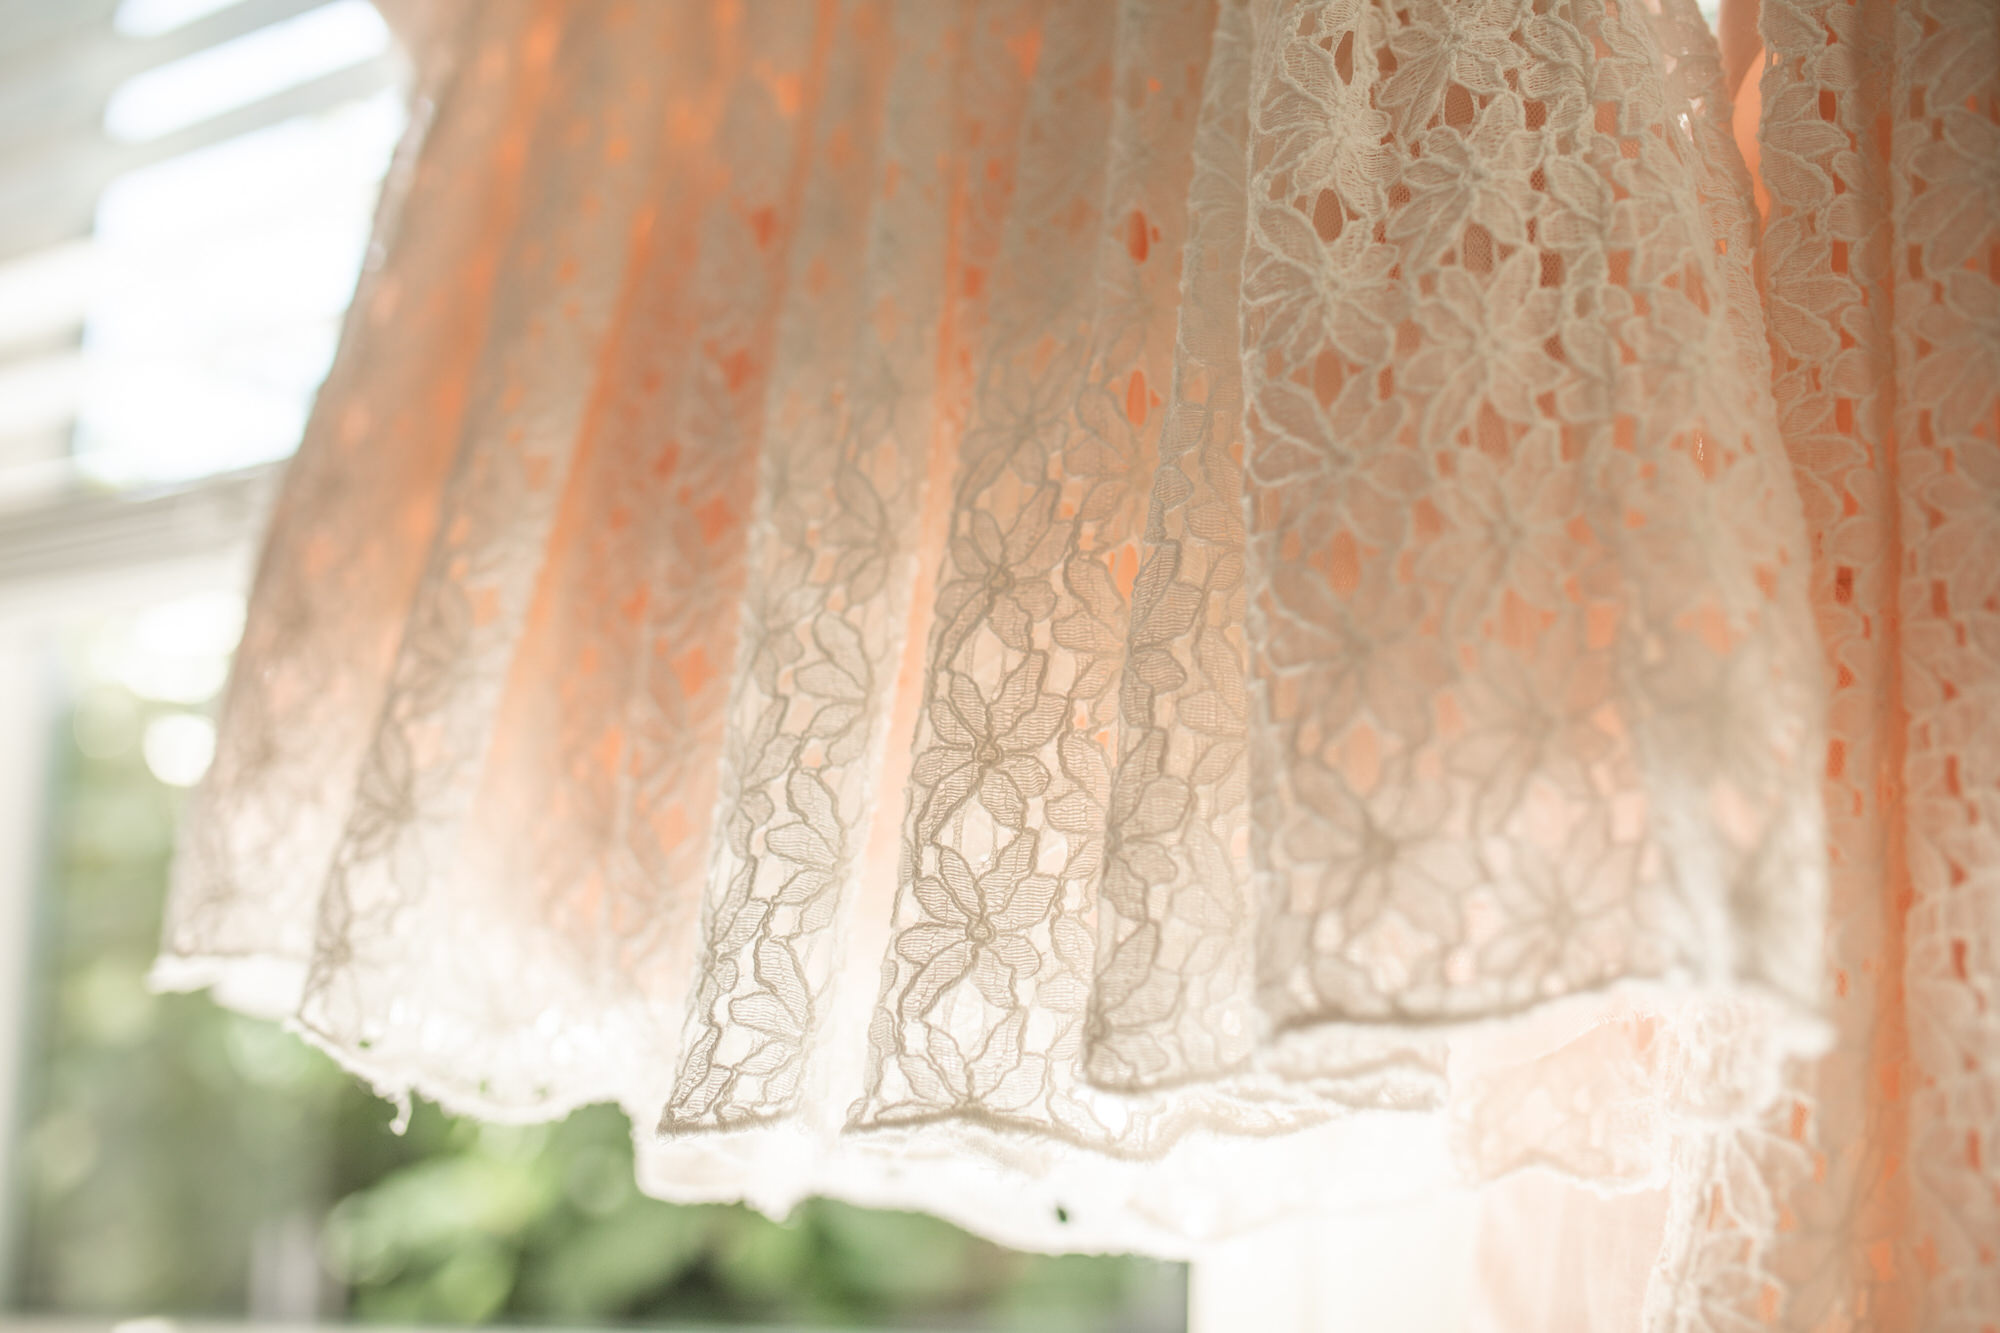 a dress hanging in a window